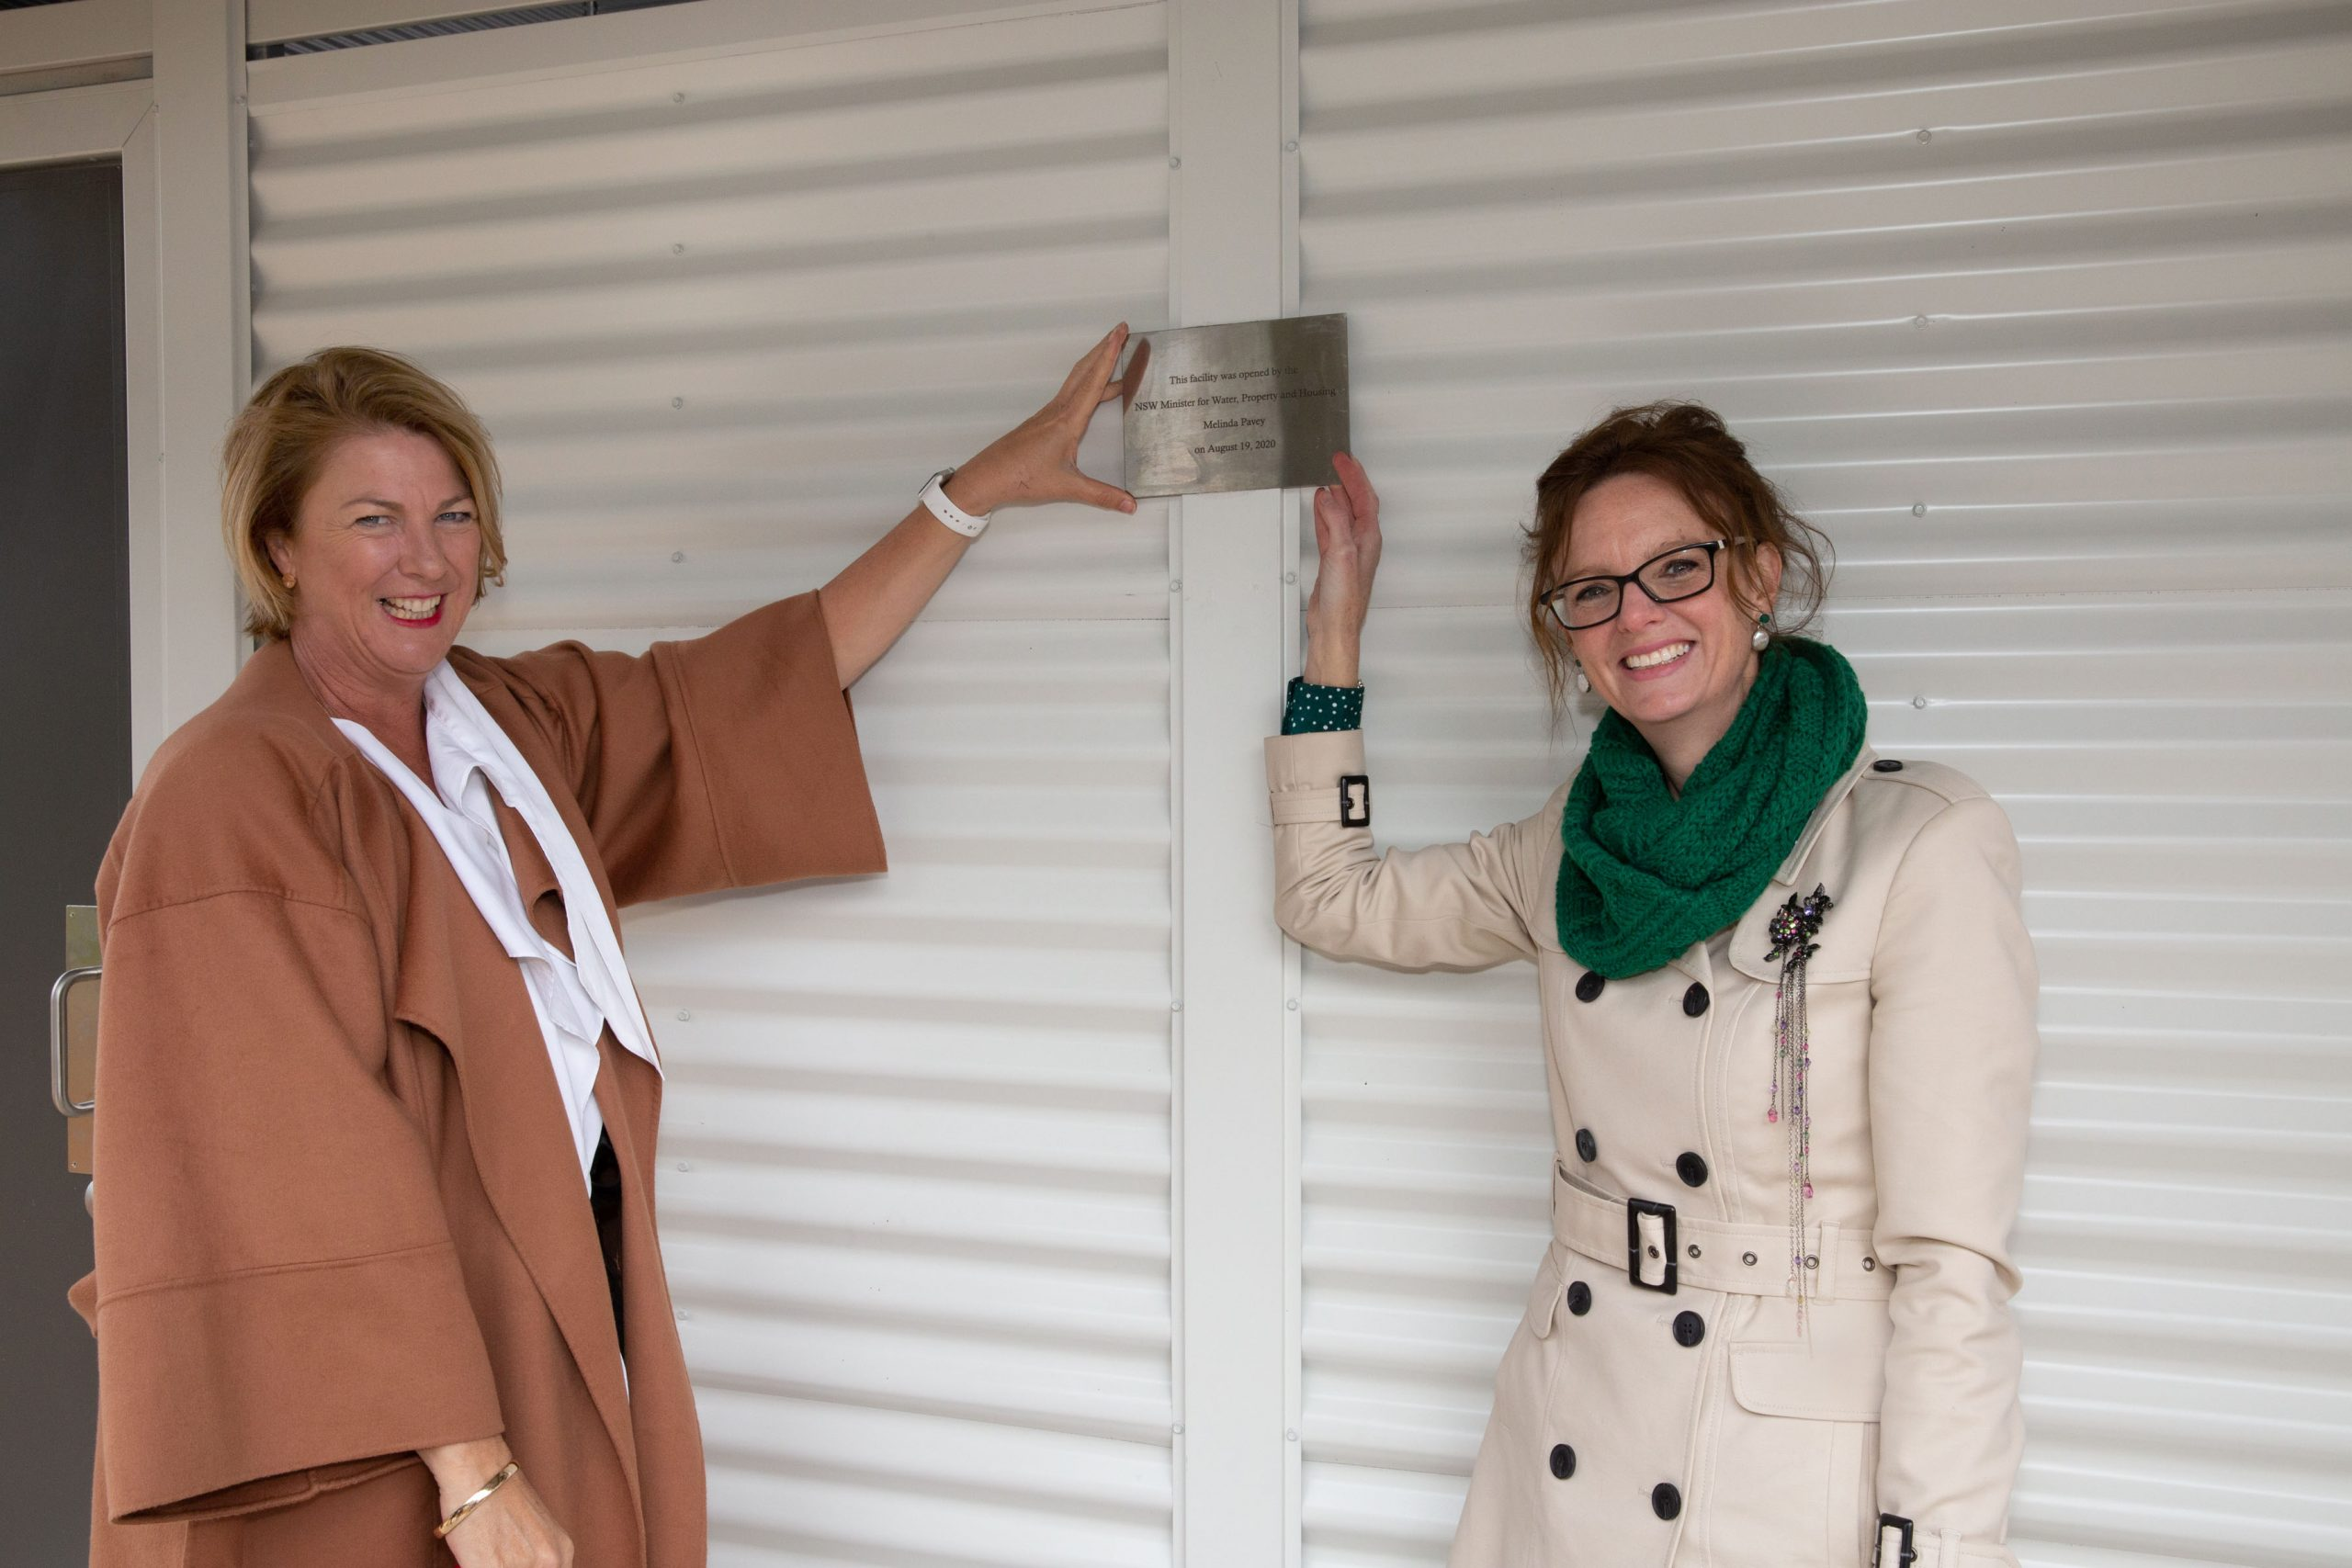 Melinda Pavey and Steph Cook touch a new plaque and smile at the camera.